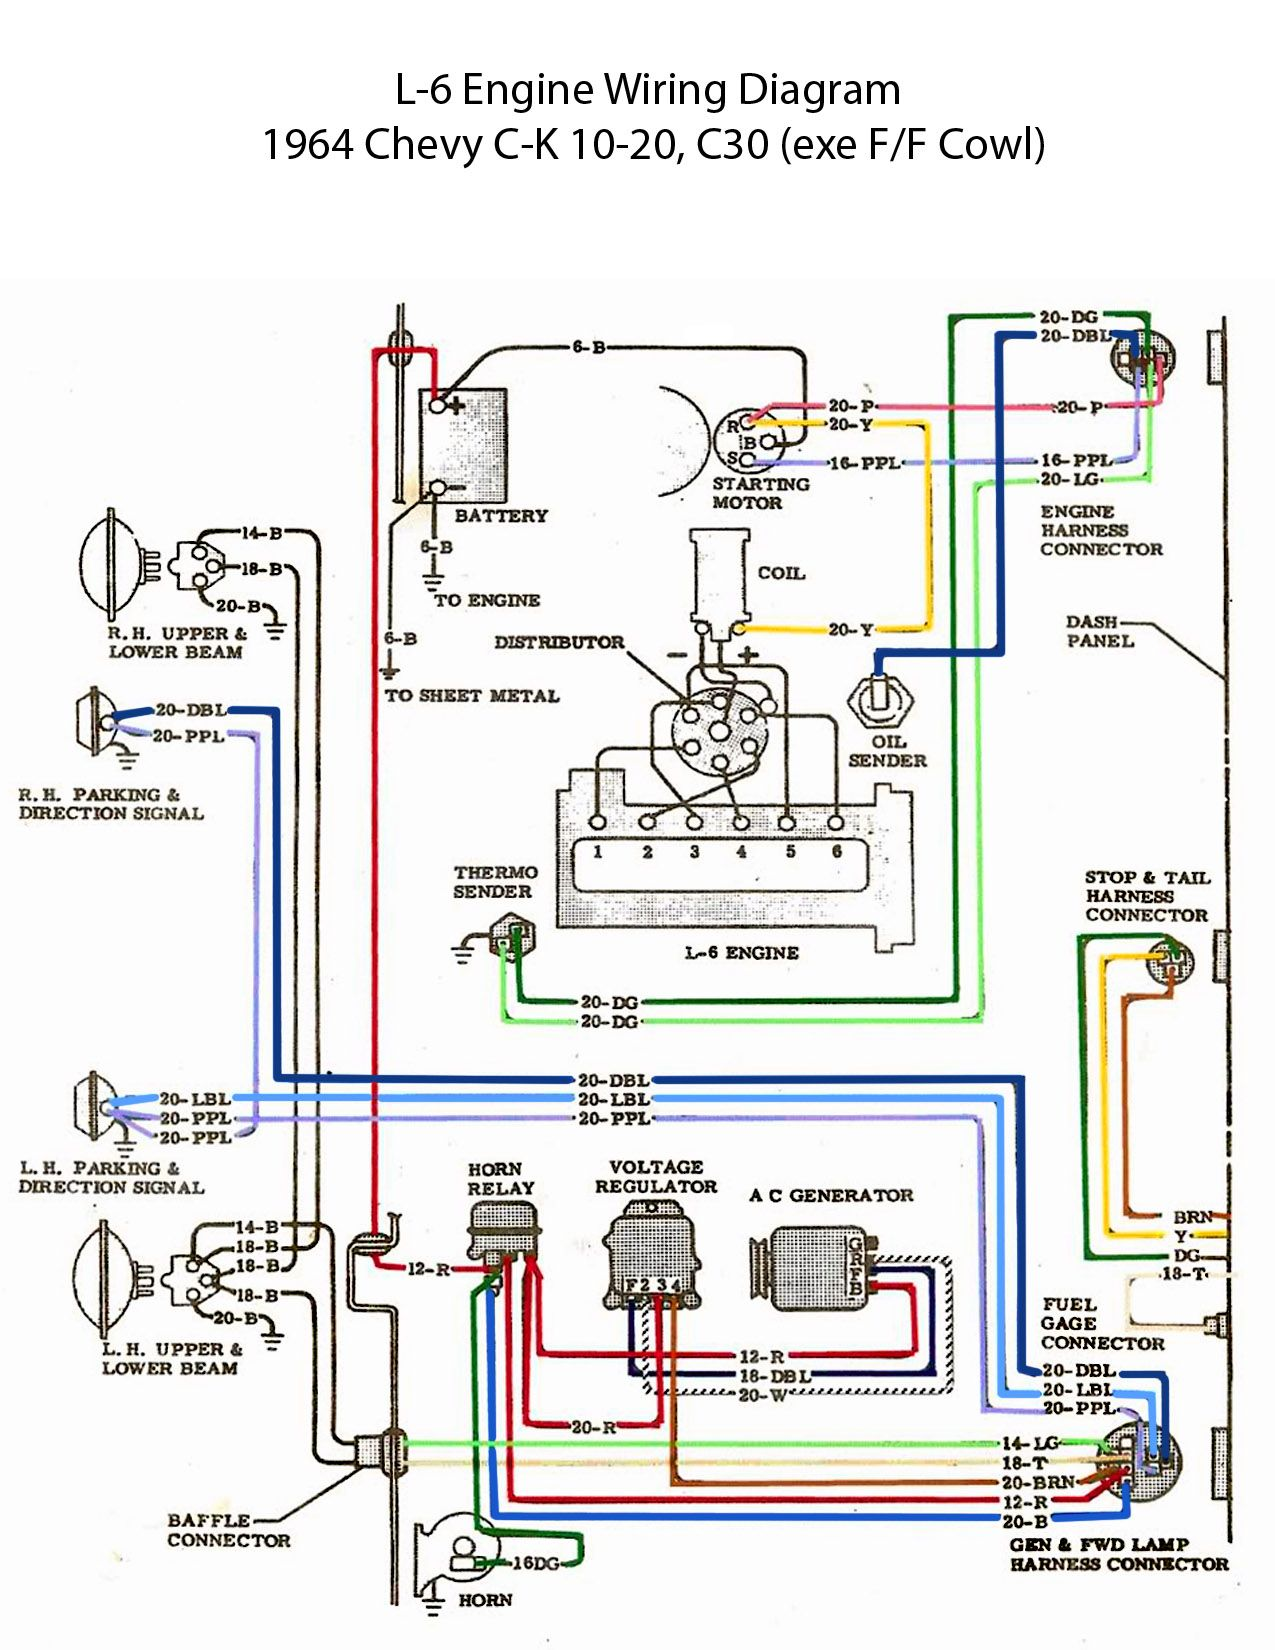 65 Chevy Truck Fuse Block Wiring Diagram For C30 Auto Electrical Rcs Tbz48 Thermostat Diagrams